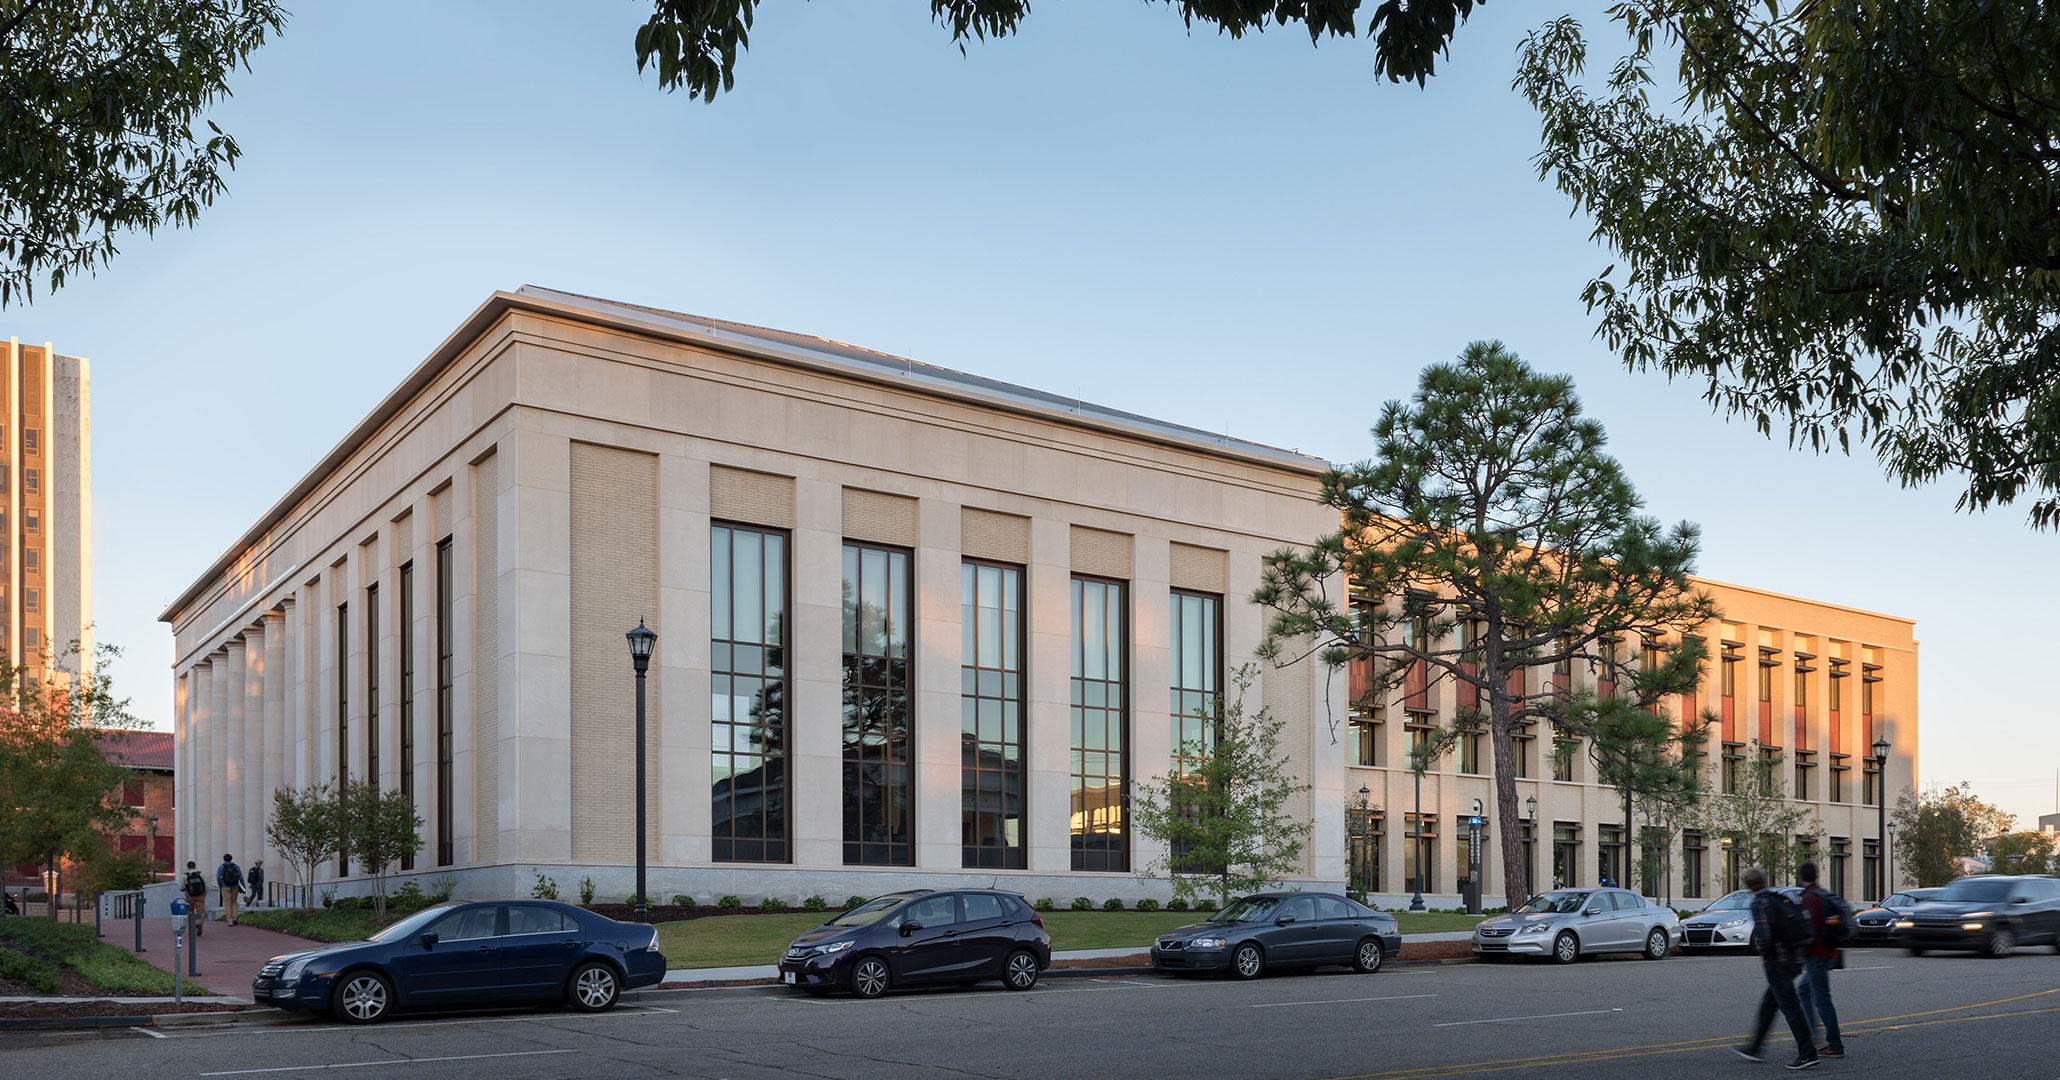 The University of South Carolina worked with Boudreaux architects to design the new Law School on Gervais and Bull Street.